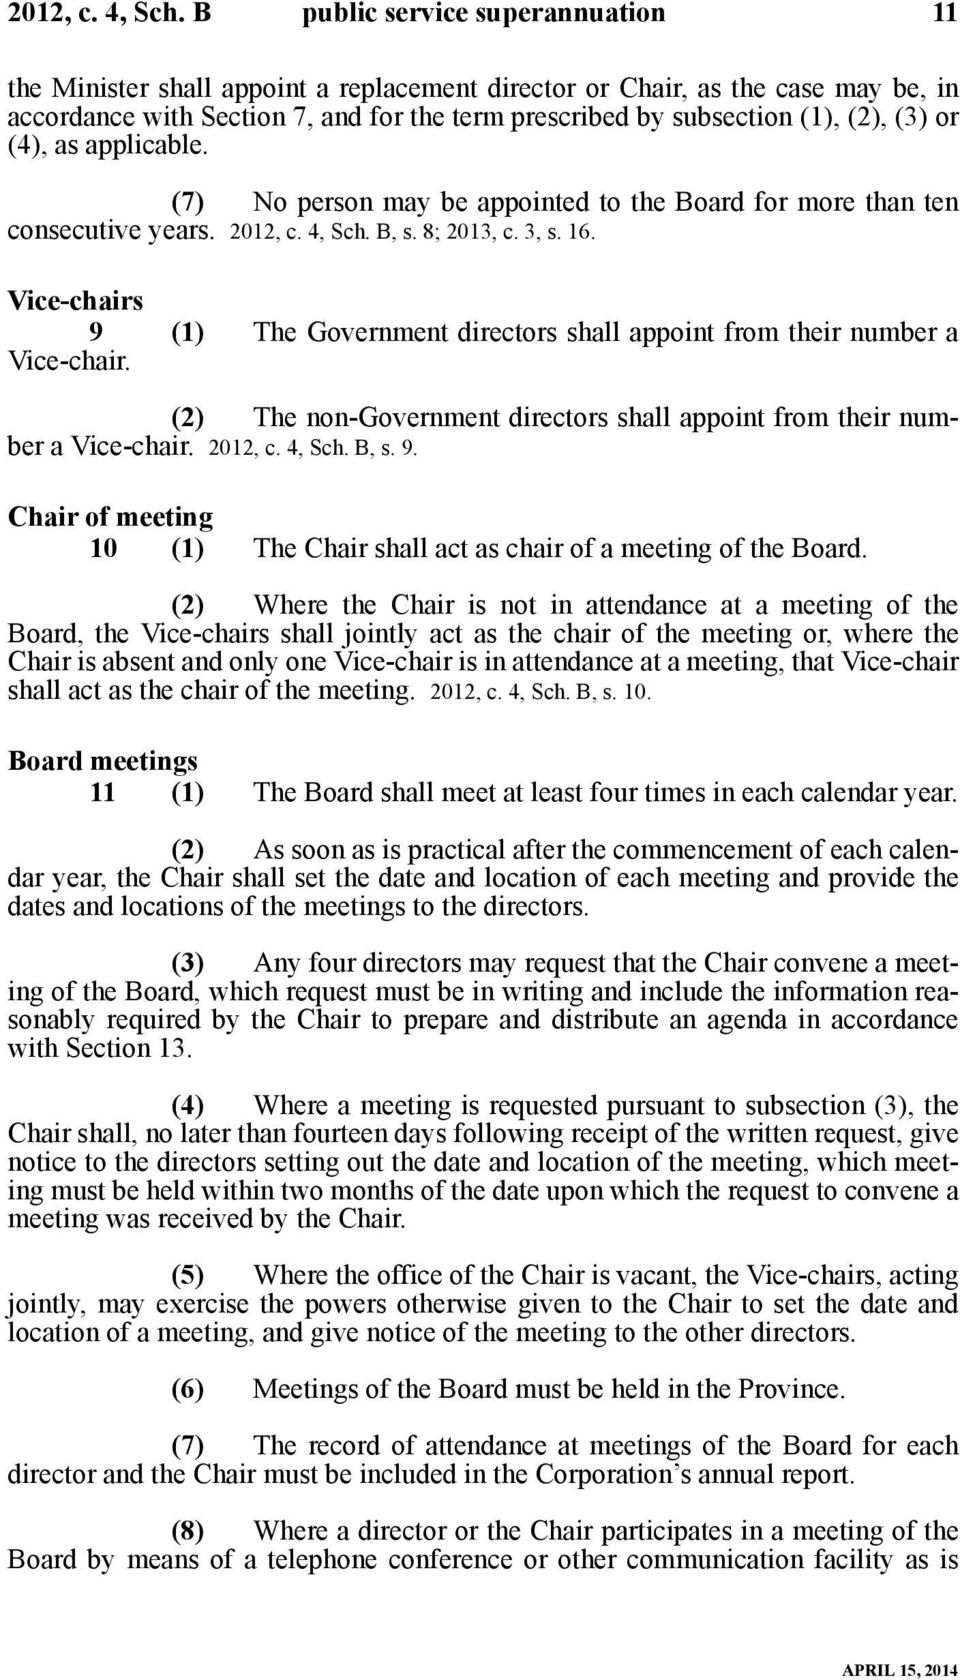 (3) or (4), as applicable. (7) No person may be appointed to the Board for more than ten consecutive years.  B, s. 8; 2013, c. 3, s. 16.